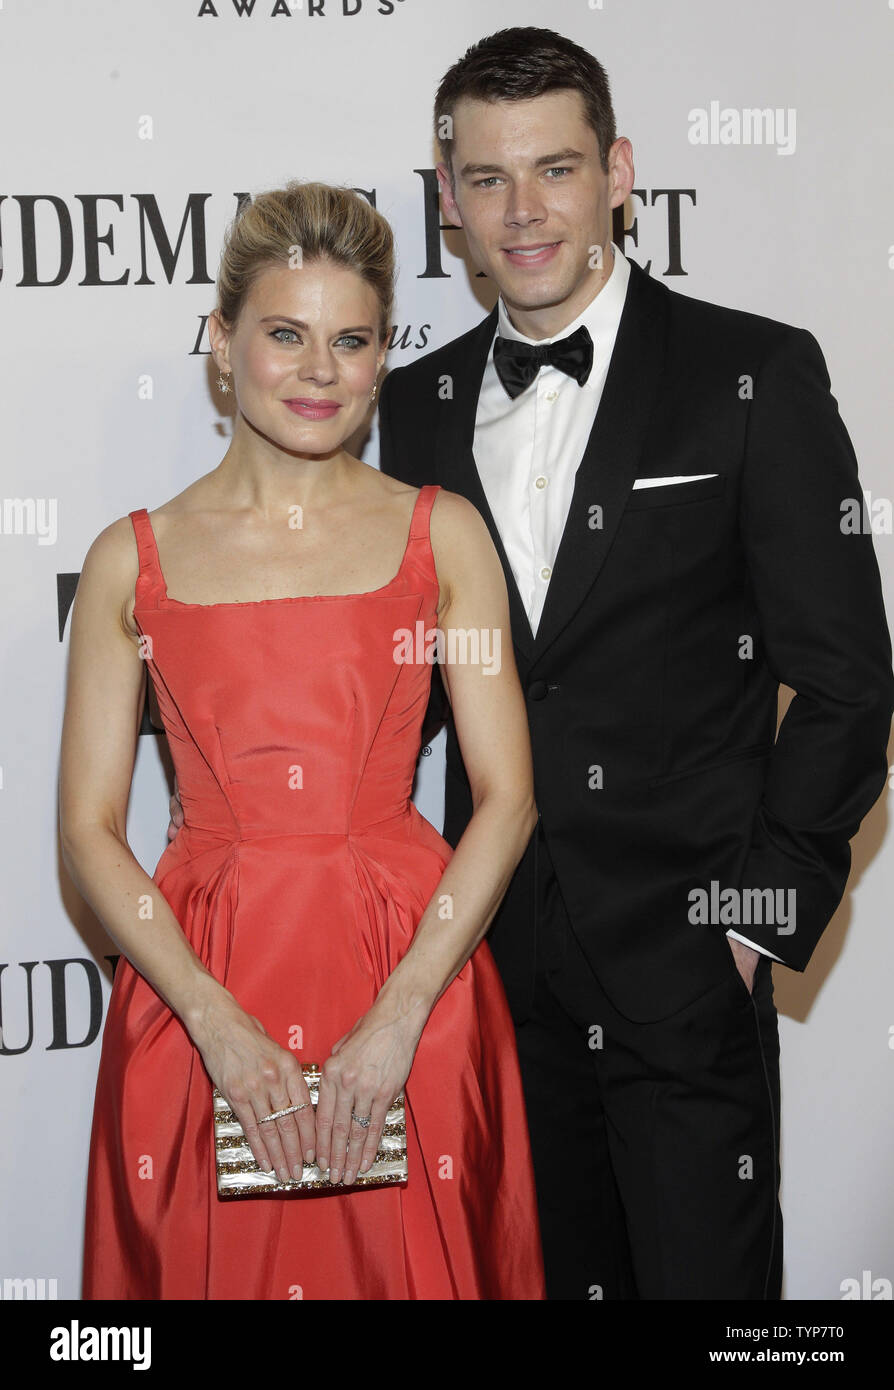 Celia Keenan-Bolger and Brian J. Smith arrive on the red carpet at the 68th Tony Awards at Radio City Music Hall in New York City on June 8, 2014. The annual awards, which are presented by the American Theatre Wing, recognizes the achievements of Broadway theater.     UPI/John Angelillo. - Stock Image